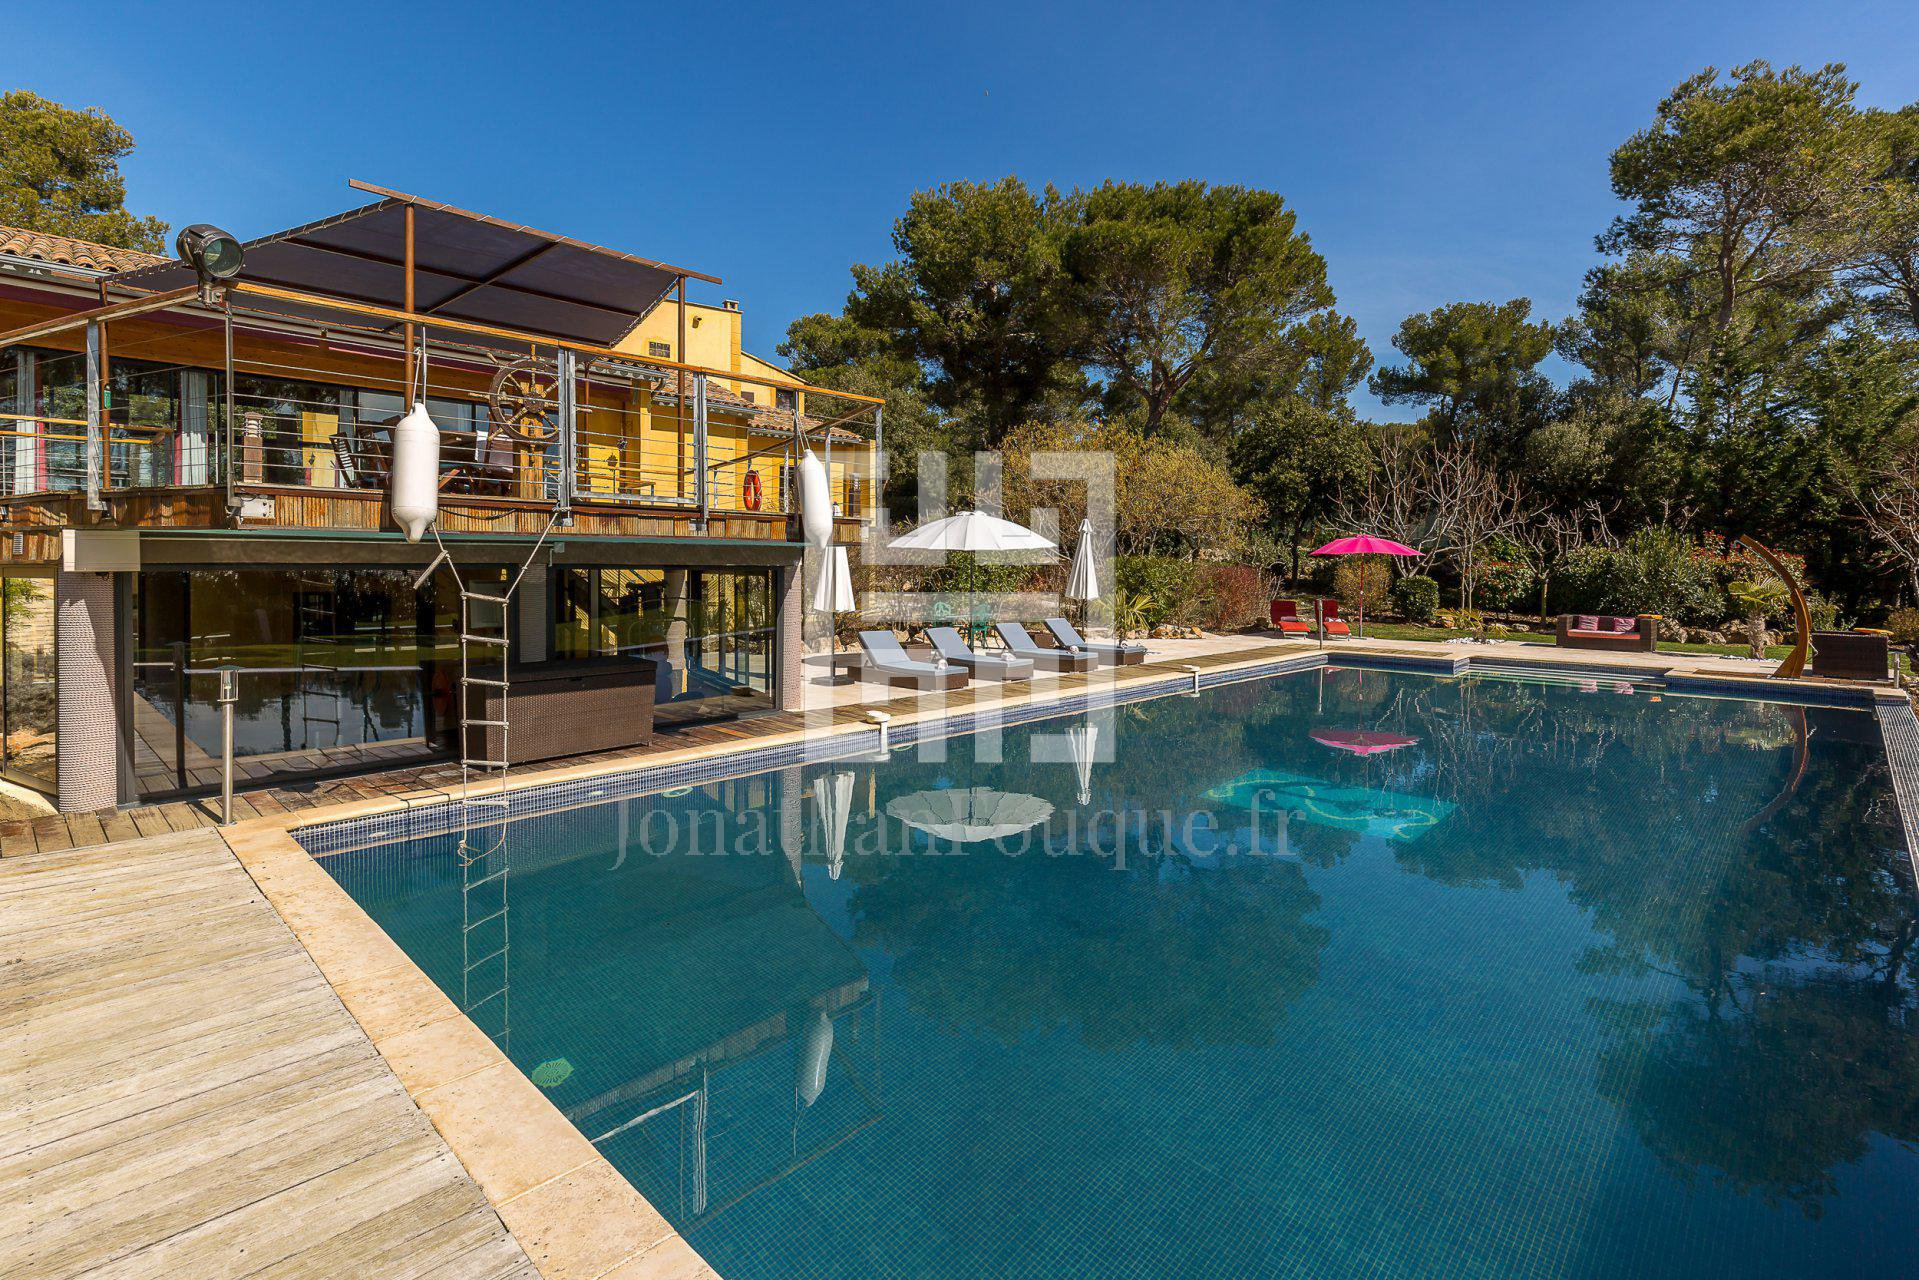 AIX-EN-PROVENCE - LUXURY ARCHITECT VILLA